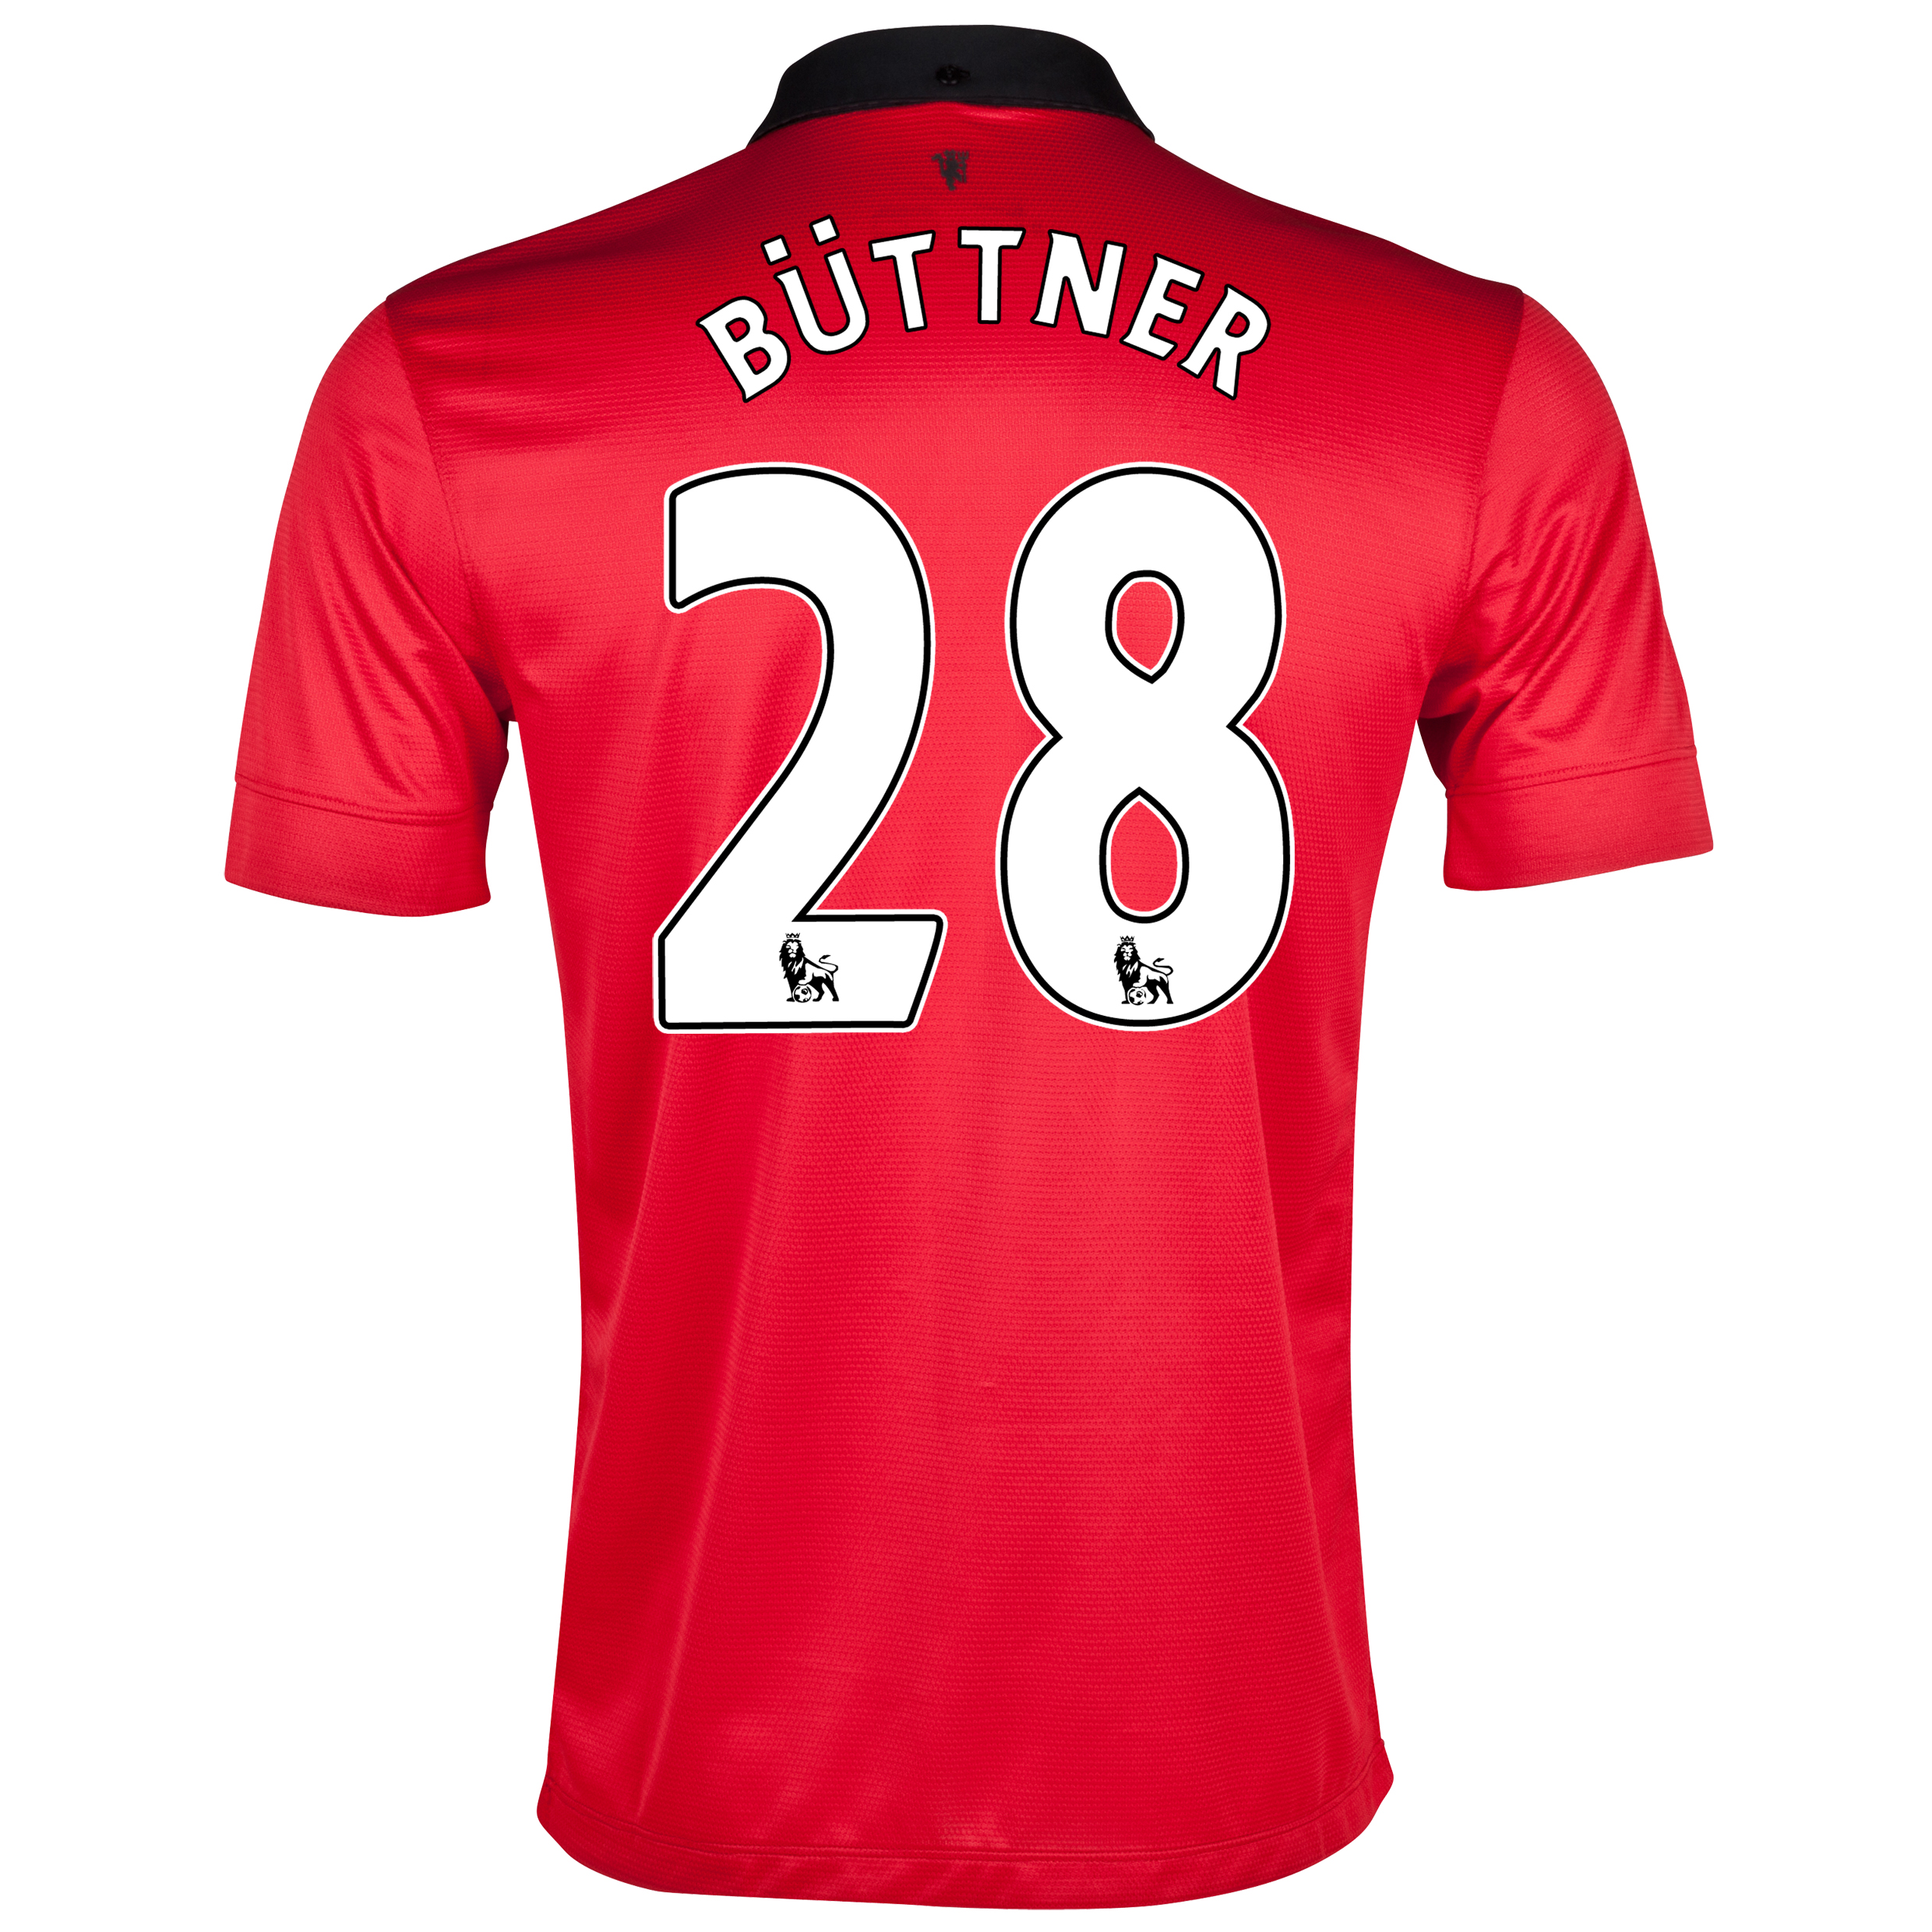 Manchester United Home Shirt 2013/14 with Büttner 28 printing